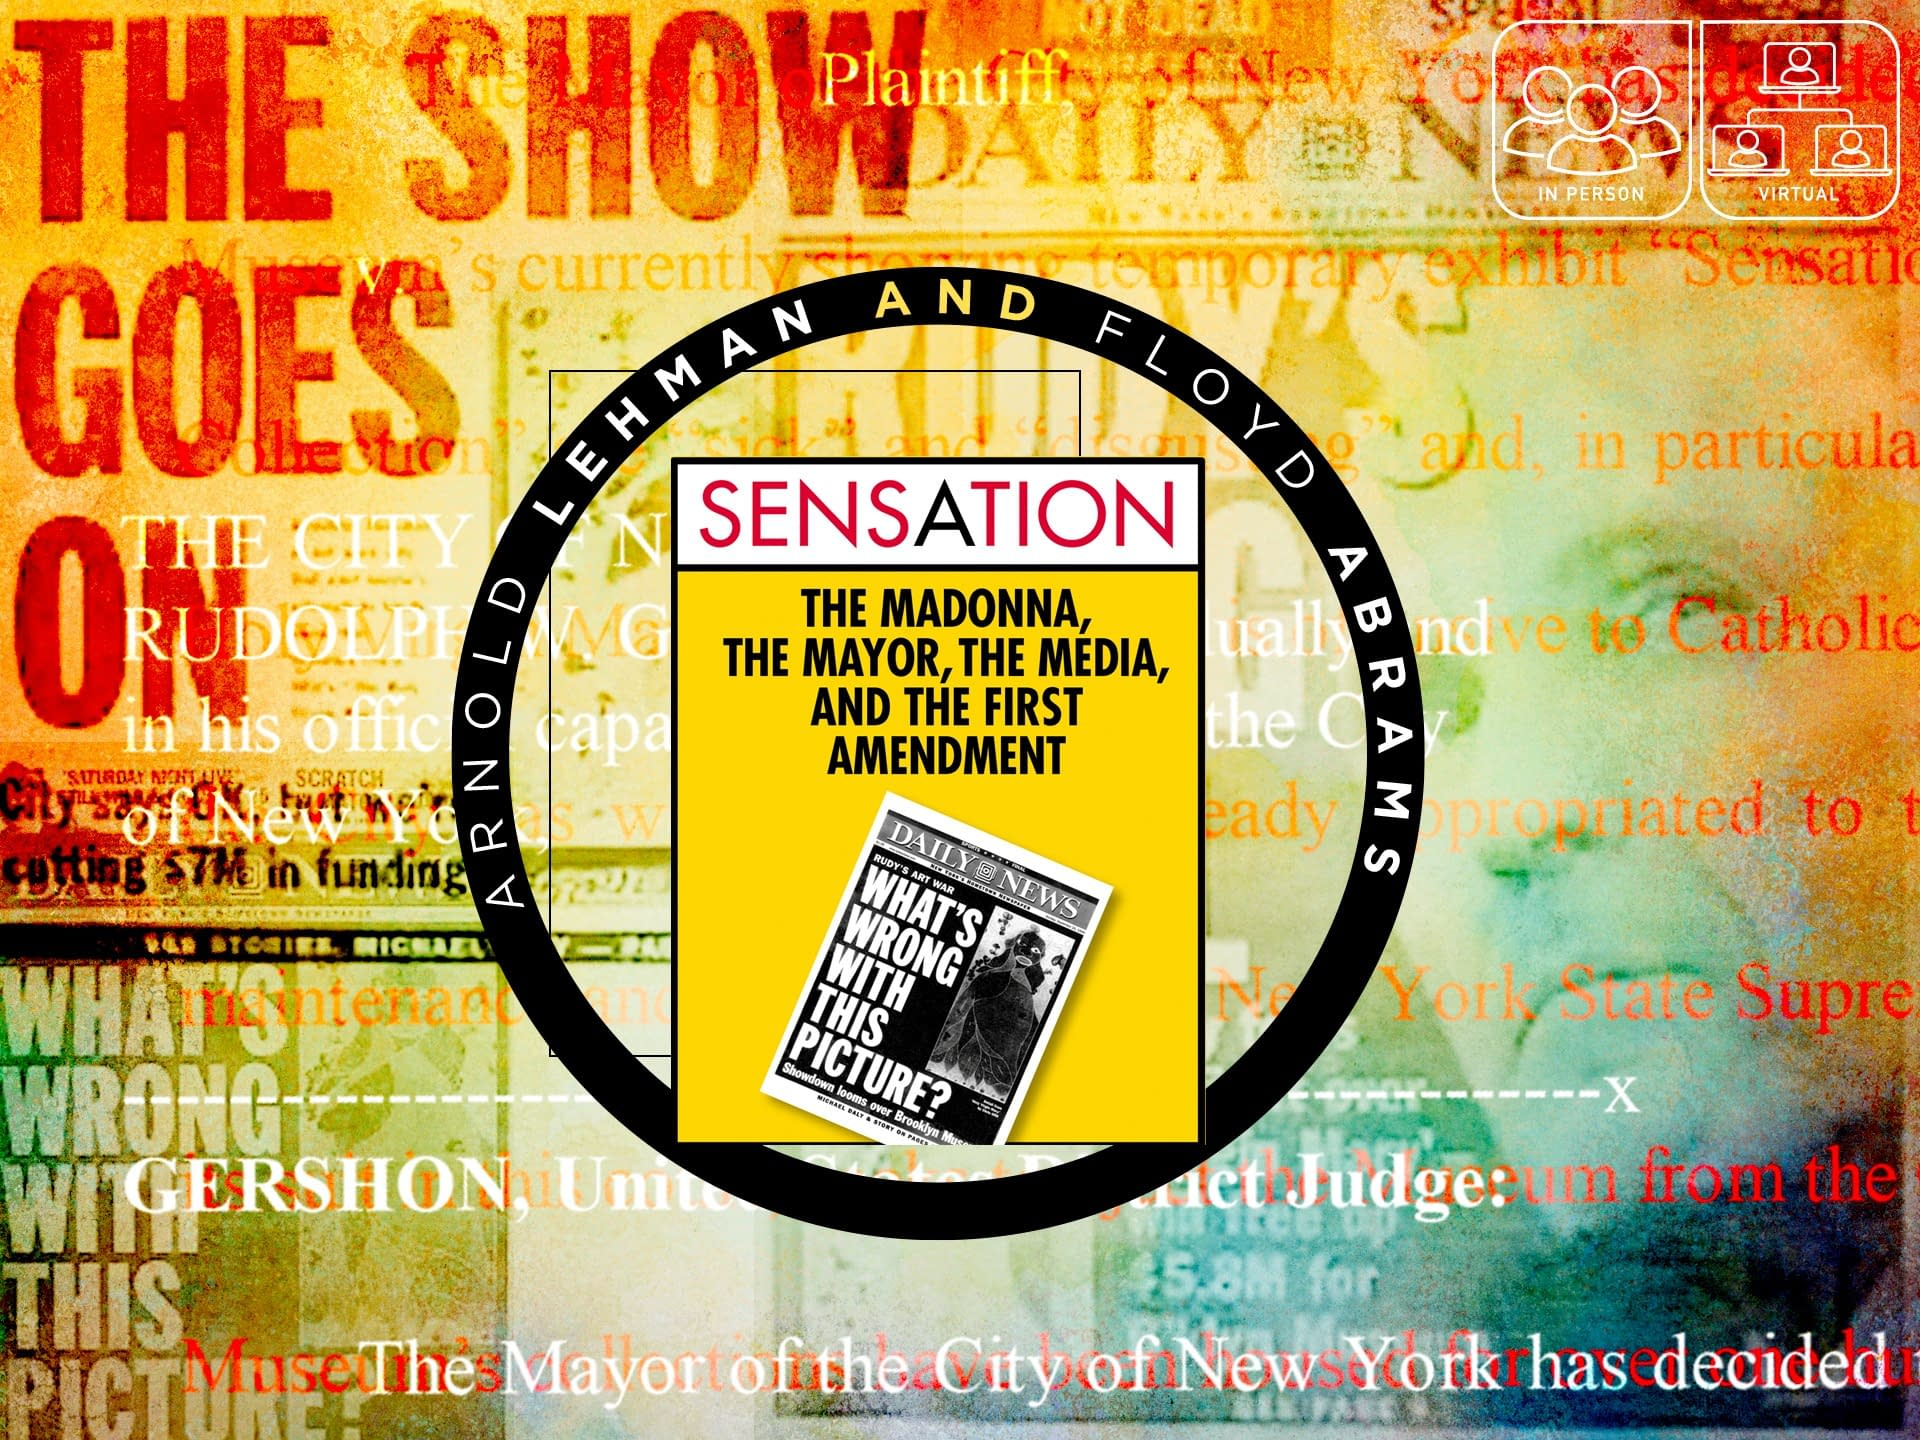 SENSATION: The Madonna, the Mayor, the Media and the First Amendment 3 - -